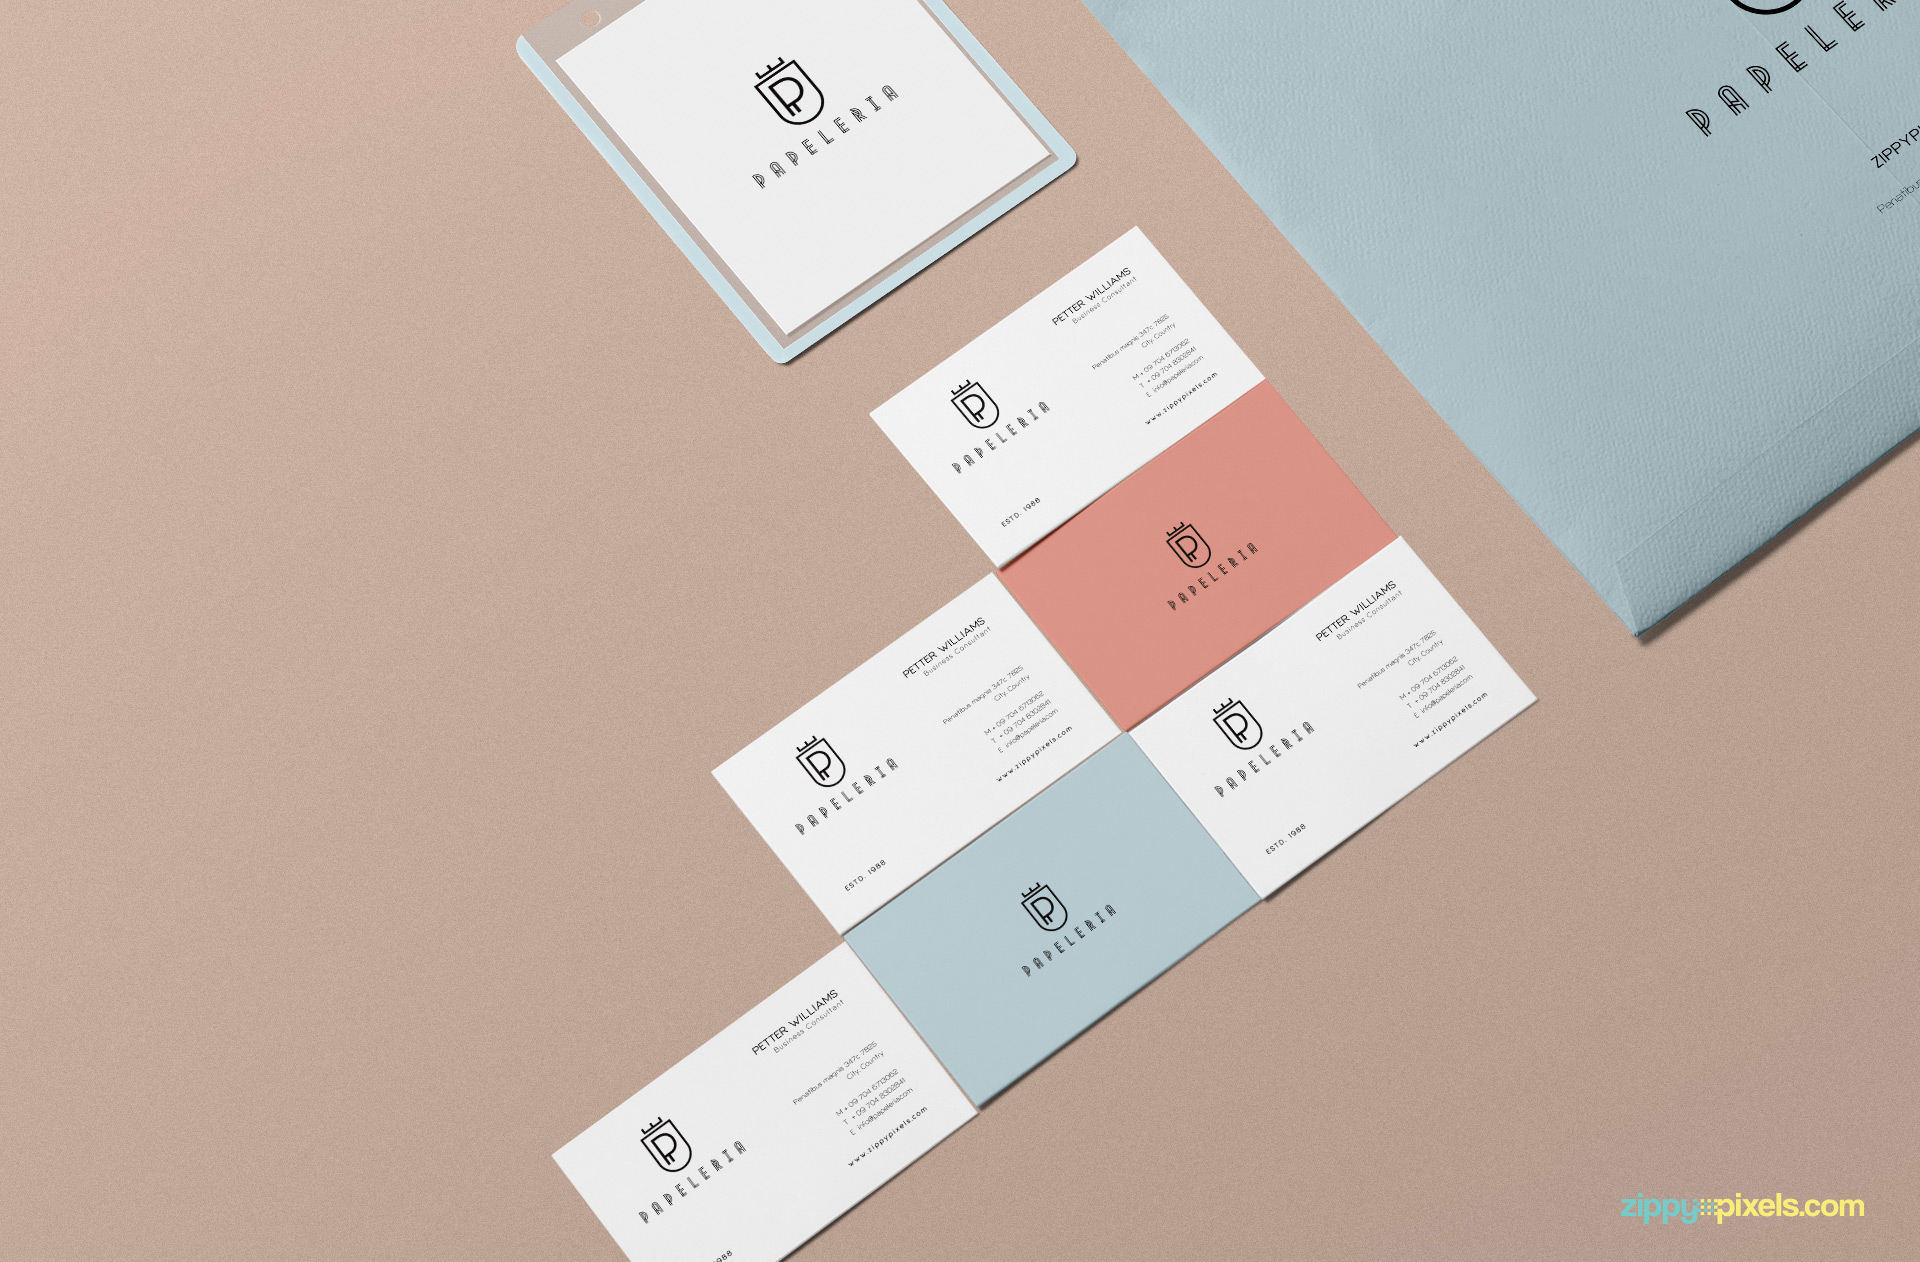 6 beautiful business cards mockup.